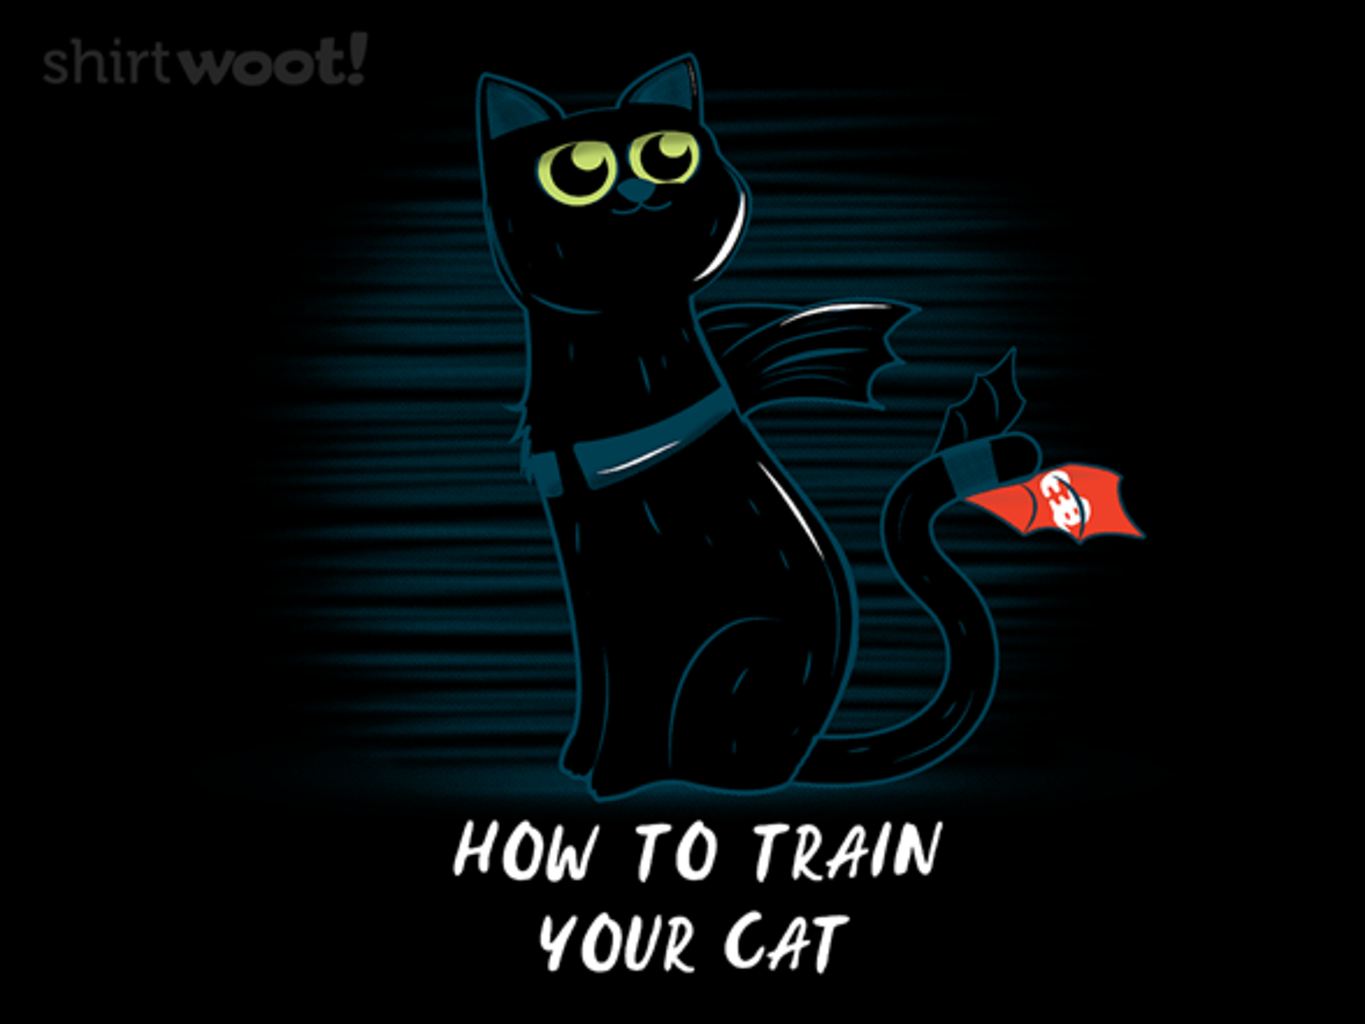 Woot!: How to Train Your Cat